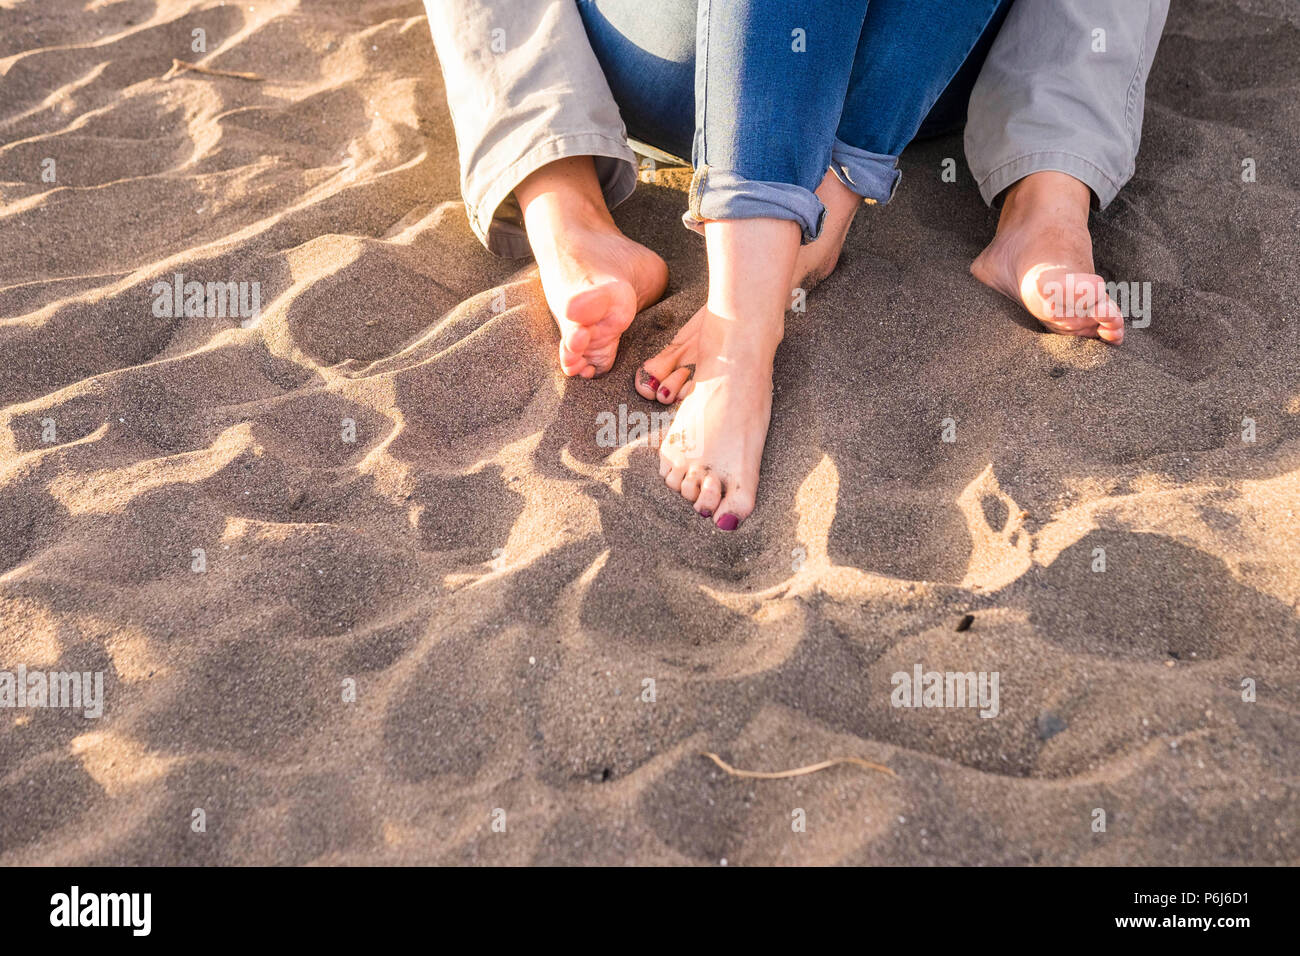 hugged feet in a summer sunny day at the beach for vacation or leisure activity together in couple. love and relationship concept with man and woman t - Stock Image